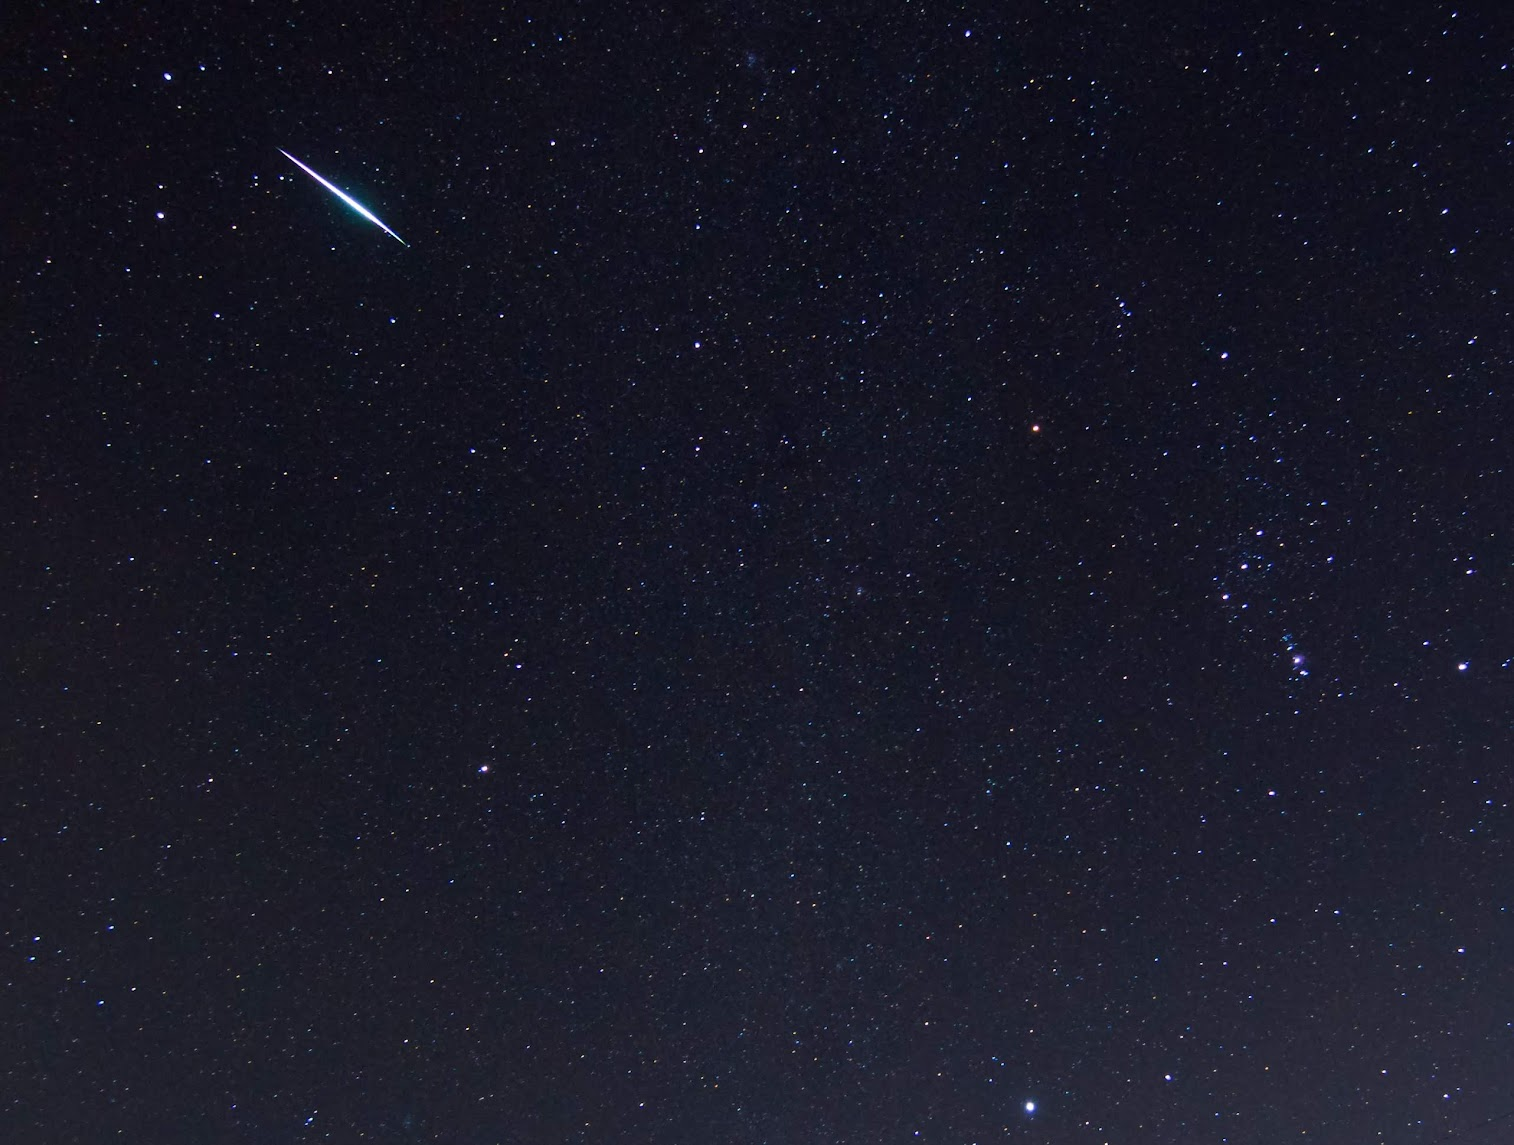 A Bright Geminid Meteor - Version 2 (Cropped)